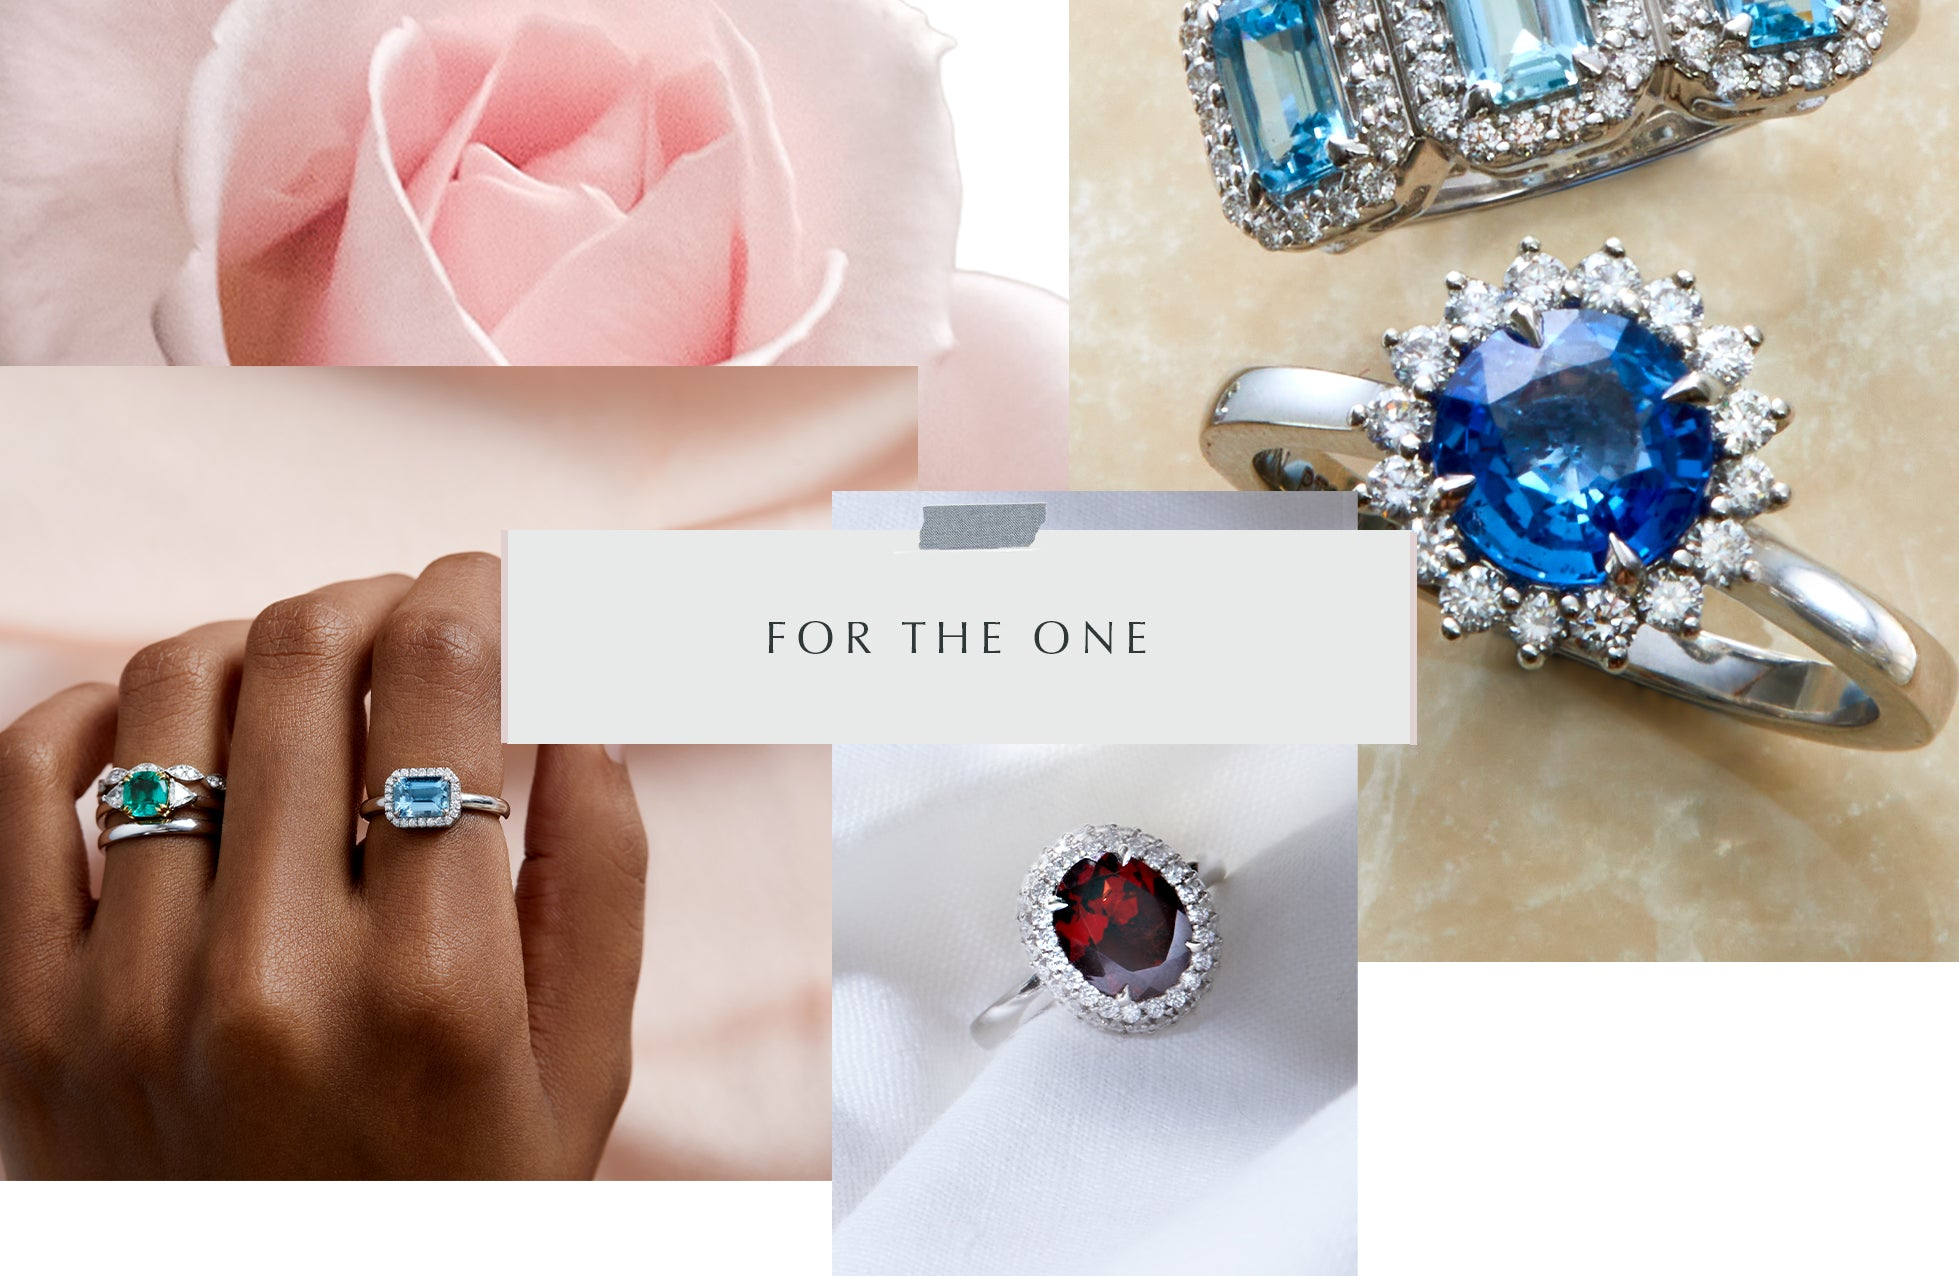 Valentines Proposal, Ethical Rings Gift Guide from Fenton, collage of images, including emerald, blue sapphire, aquamarine and garnet rings.